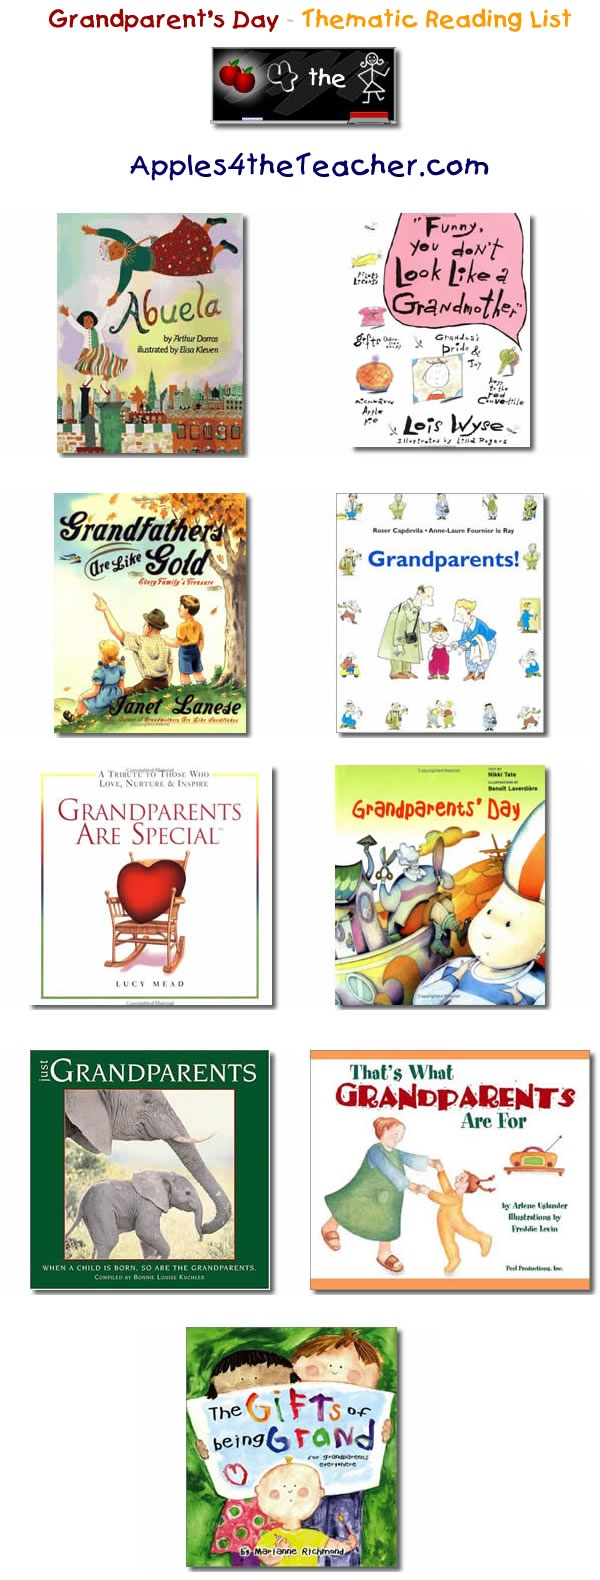 40 Best images about Grandparents' Day on Pinterest.